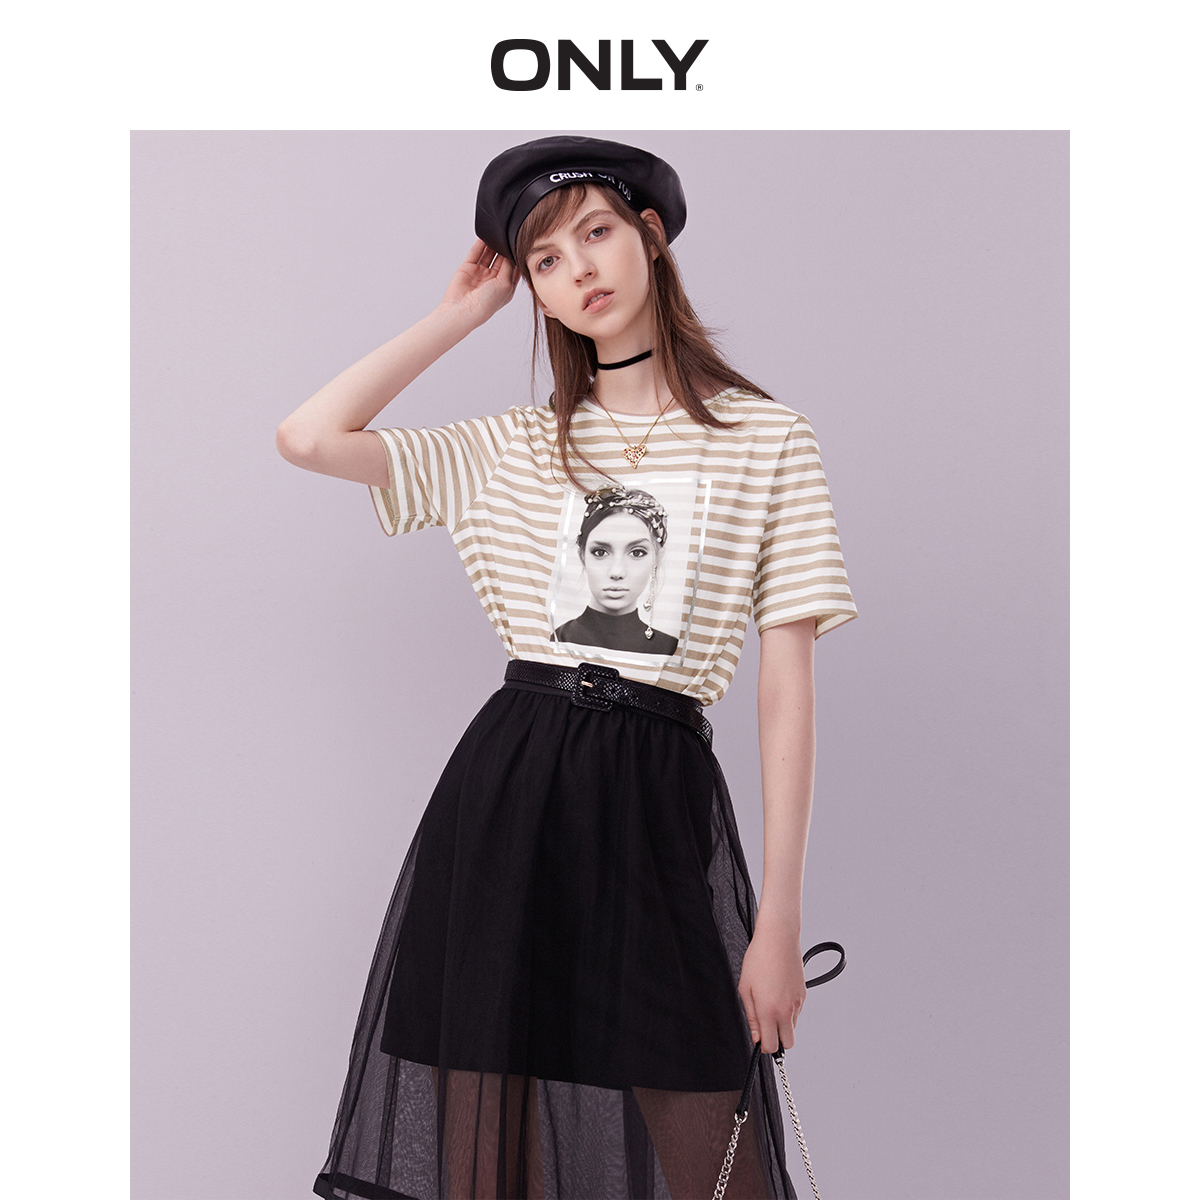 ONLY 2019 Spring Summer New Women's 100% Cotton Loose Fit Short-sleeved Printed T-shirt |119101594